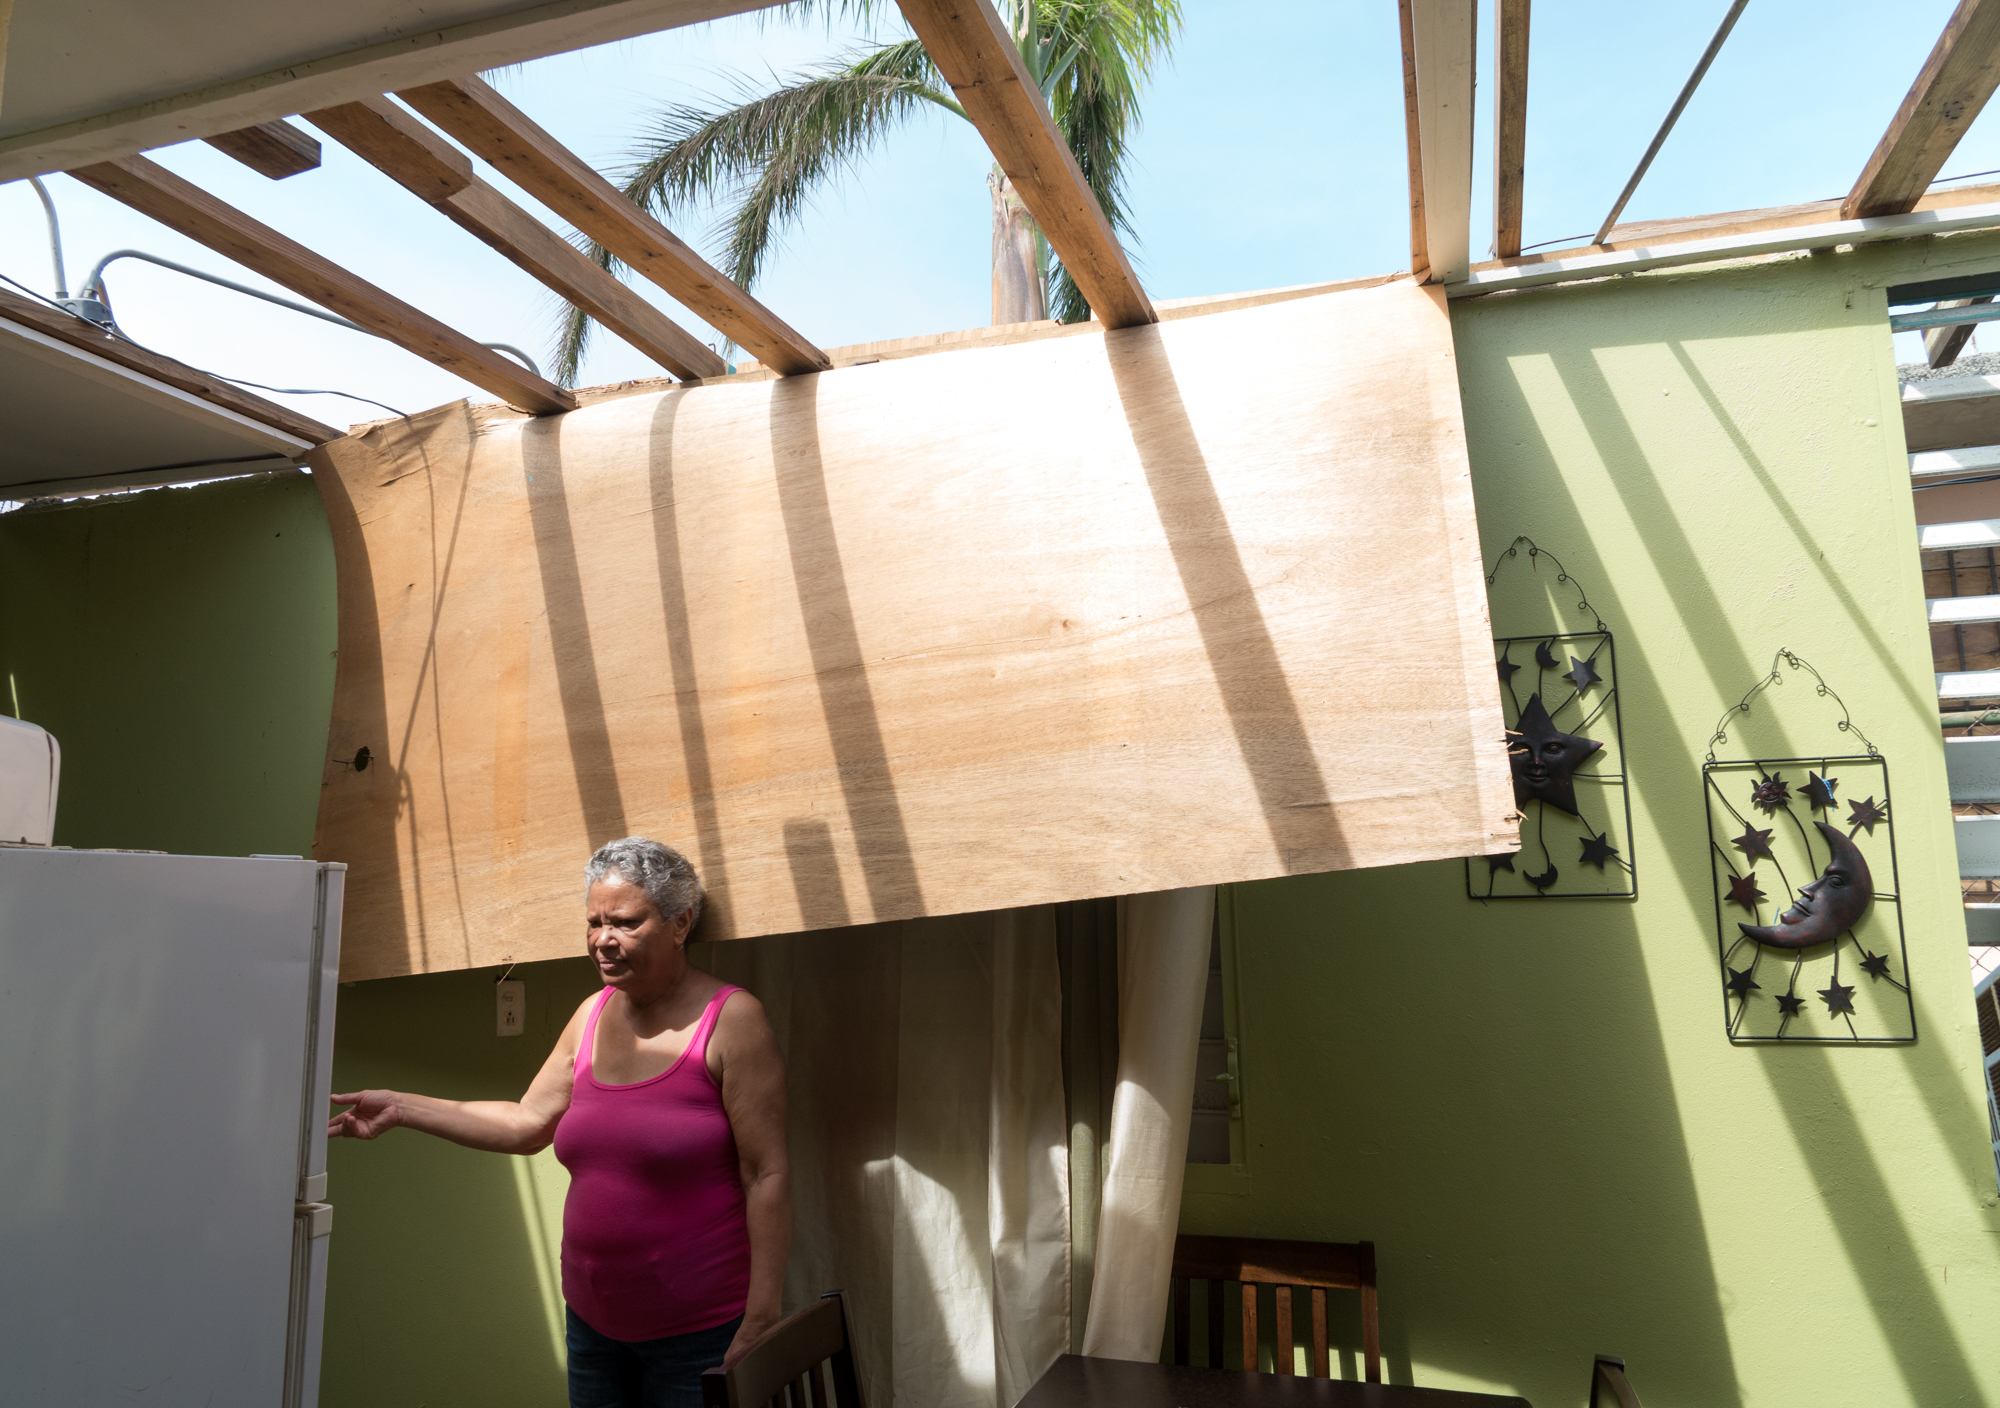 Maria Reyes, 63, stands in her home, which was severely damaged by the storm. She spends most of her time these days caring for her 82-year-old mother, Rafaela. (Angel Valentin for NPR)